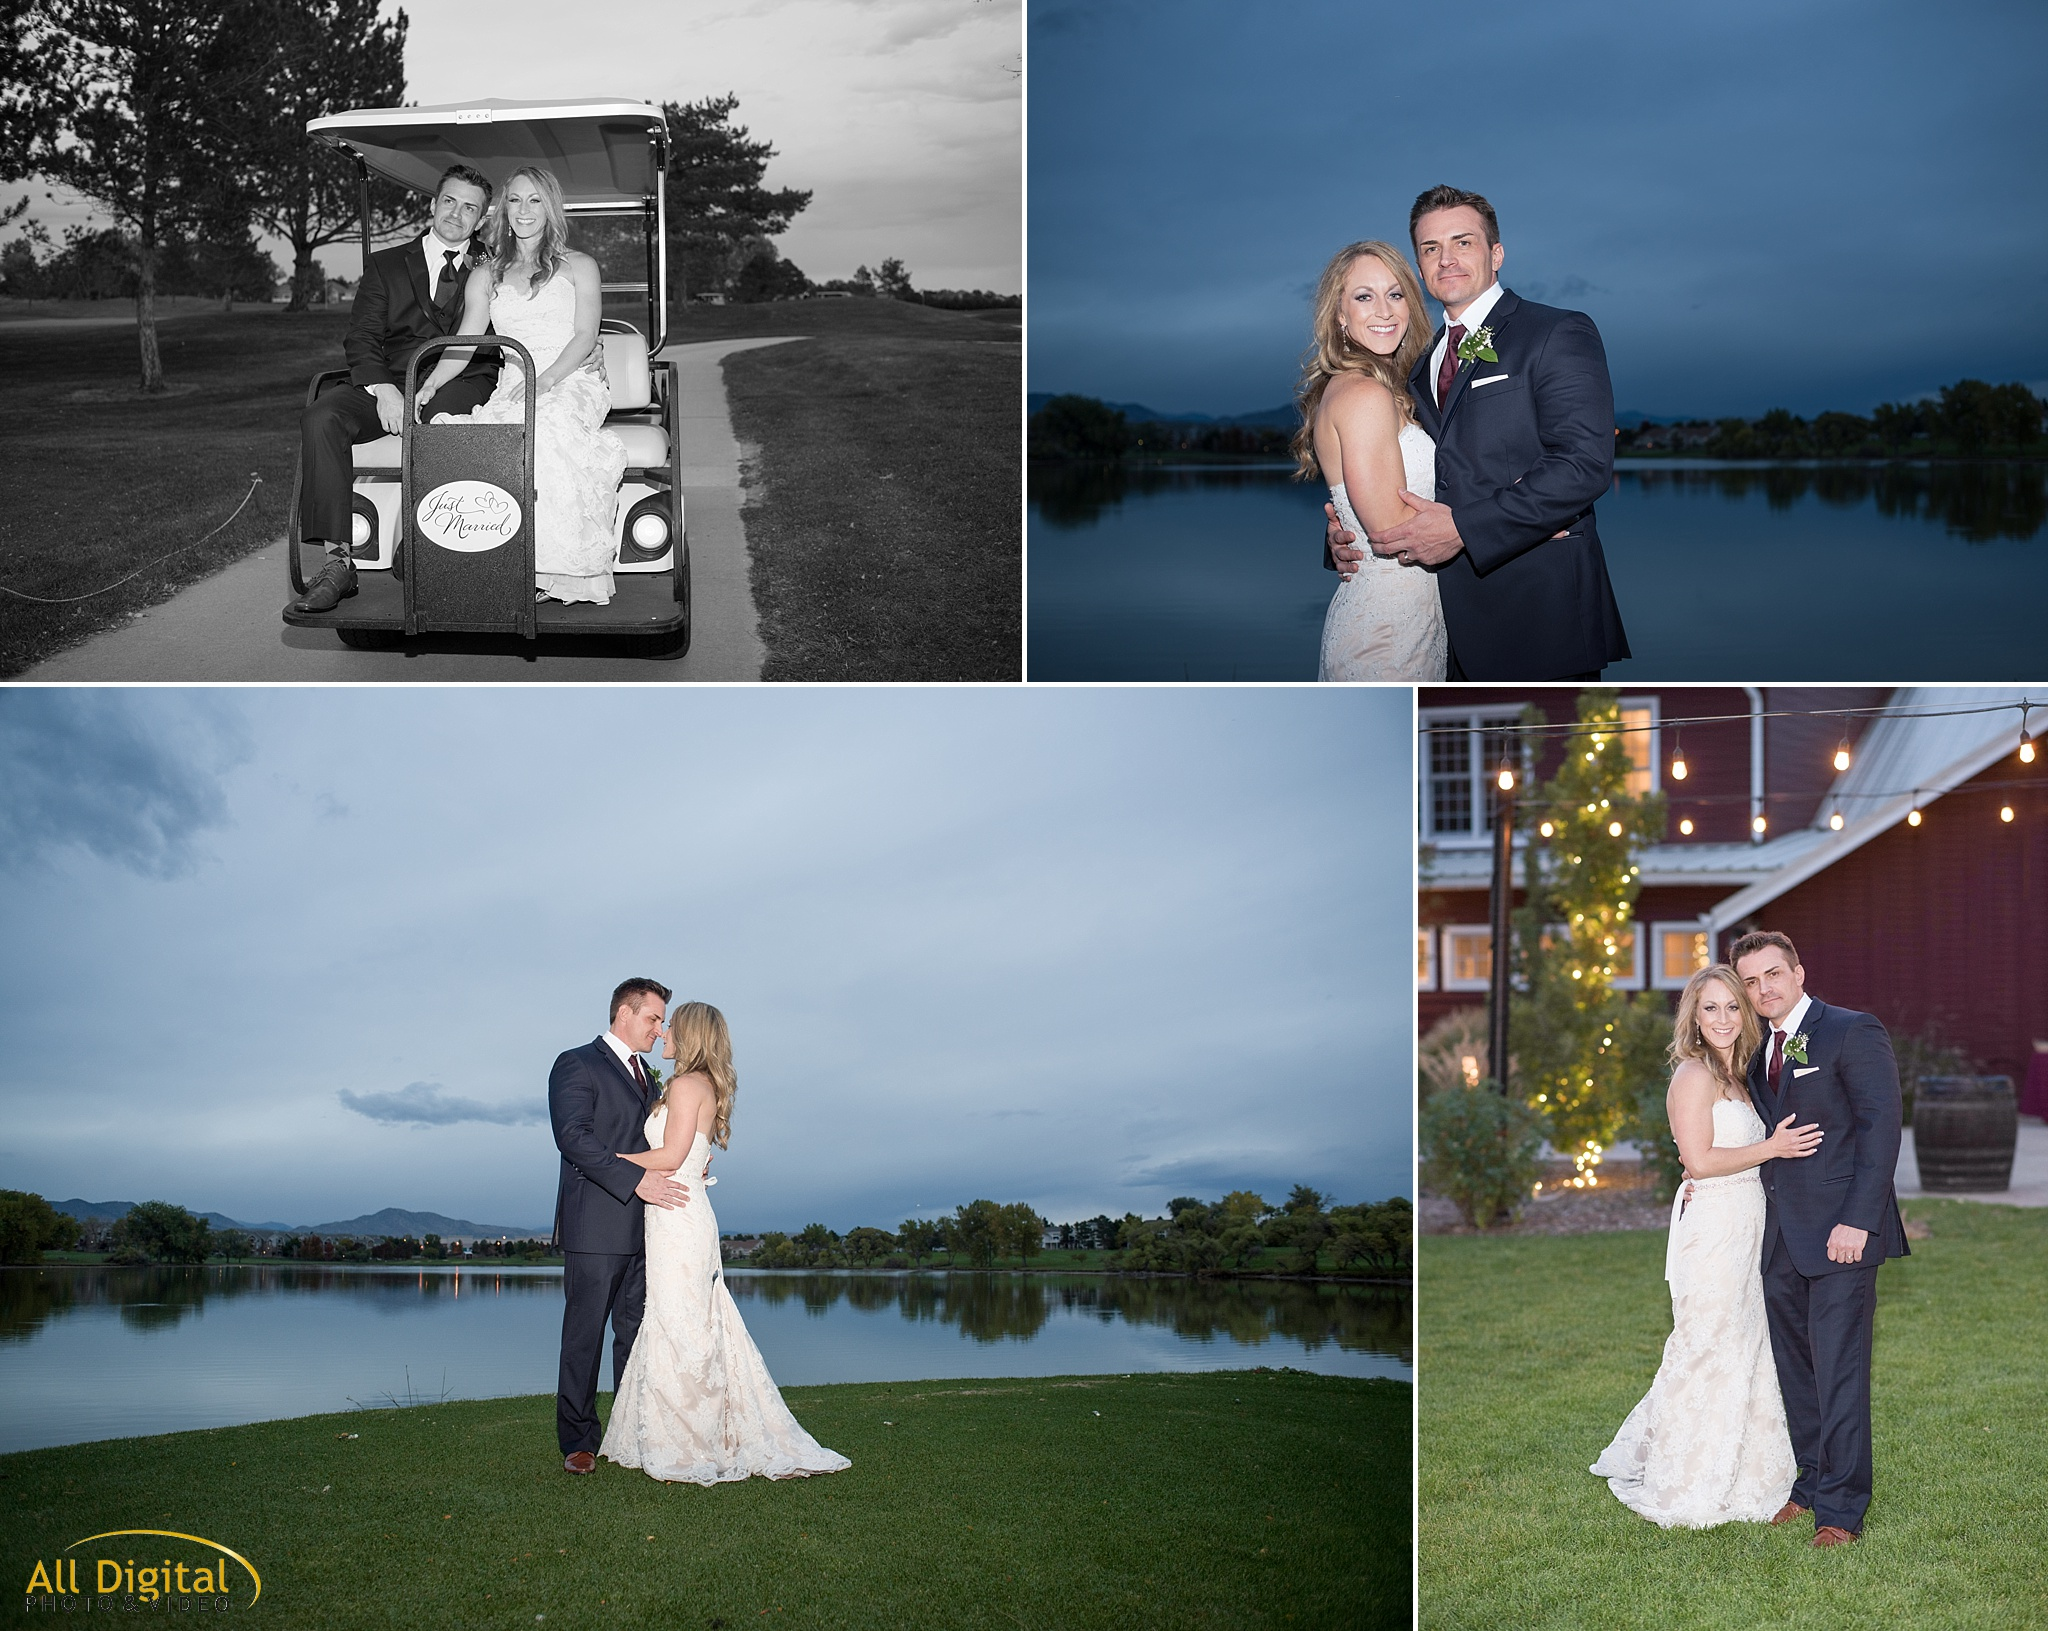 Bride & Groom Portraits on the Golf Course at Raccoon Creek.